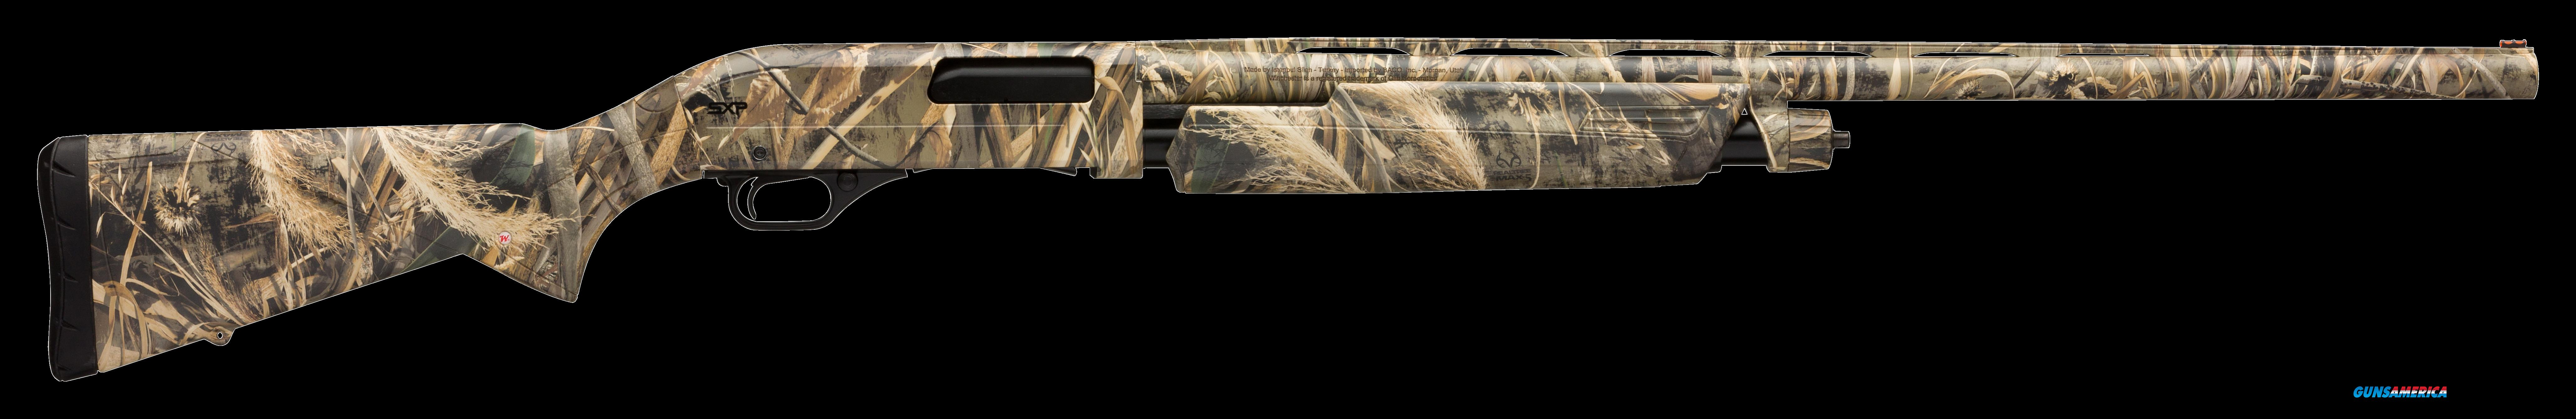 "Winchester Guns 512290291 SXP Waterfowl Pump 12 Gauge 26"" 3.5"" Realtree Max-5 Synthetic Stk Aluminum  Guns > Shotguns > W Misc Shotguns"